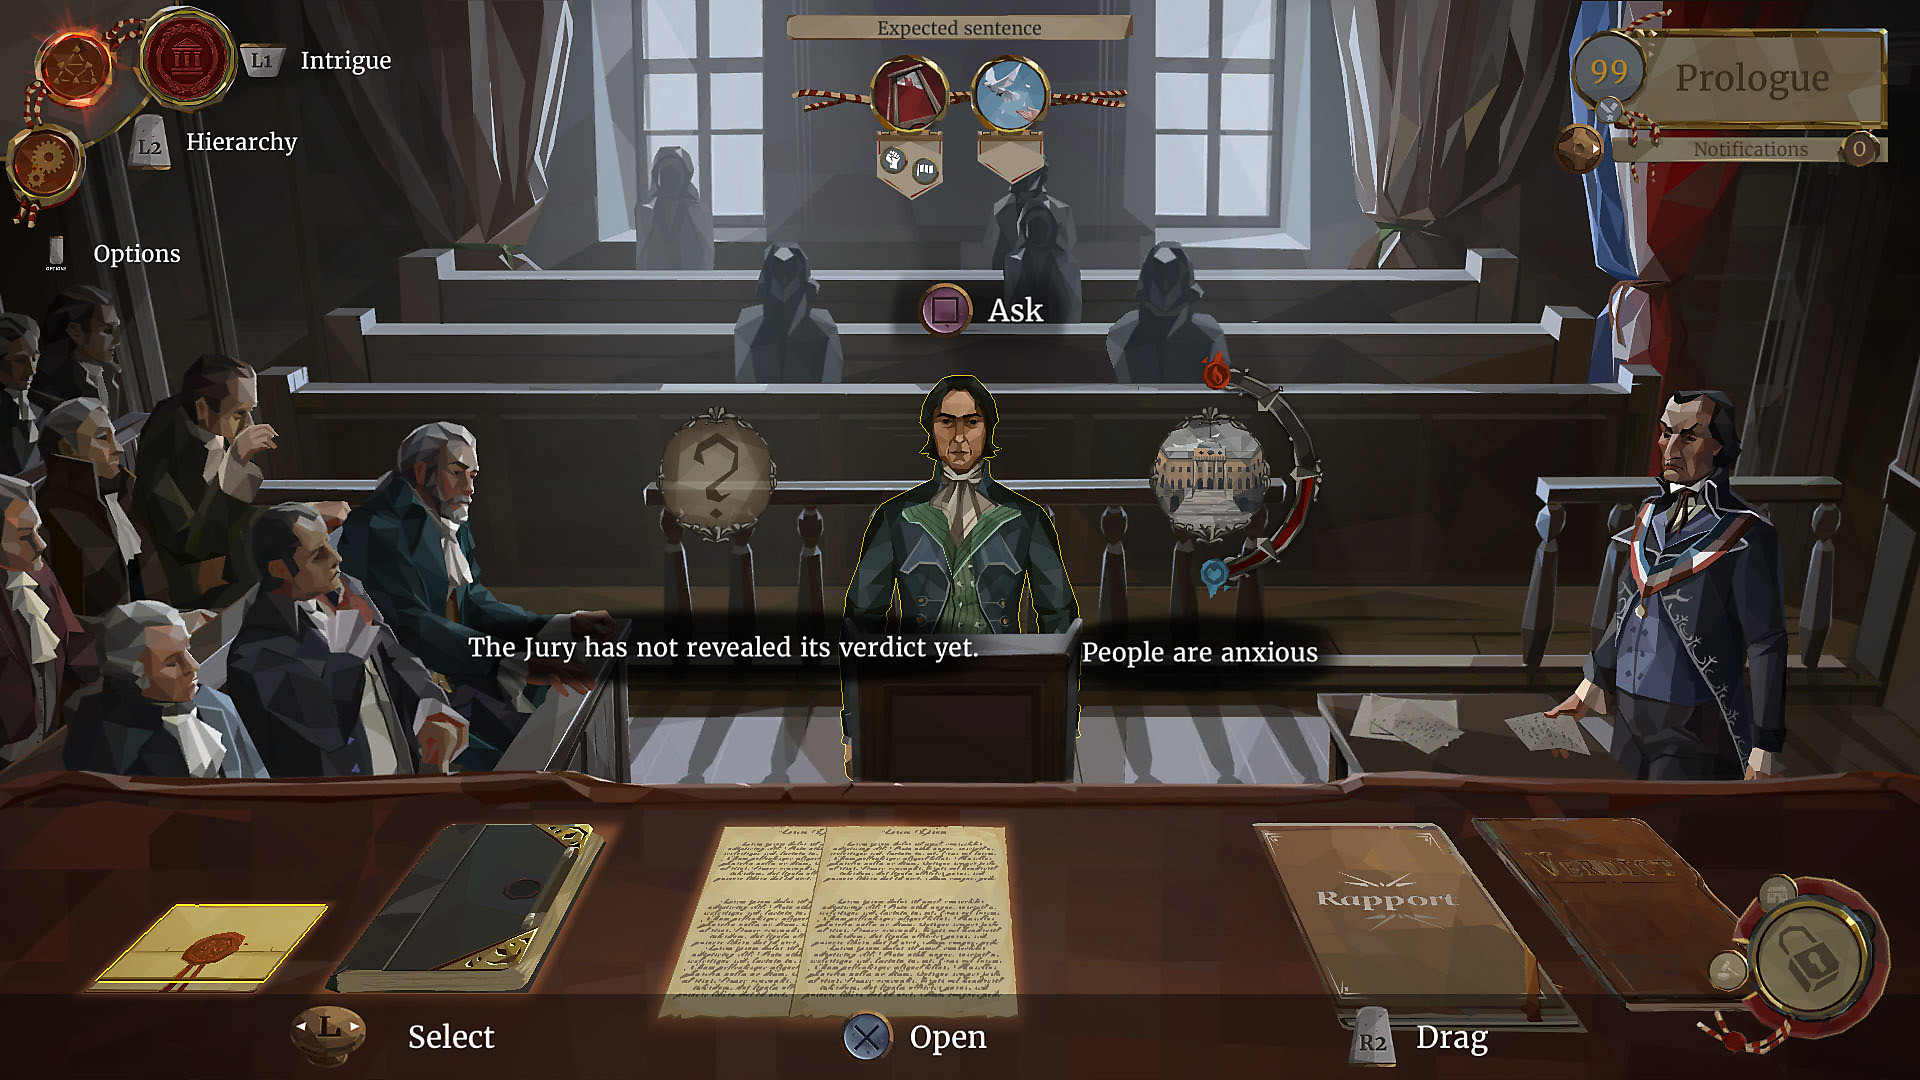 Trial scene, with many options to choose from, including dialogue choices